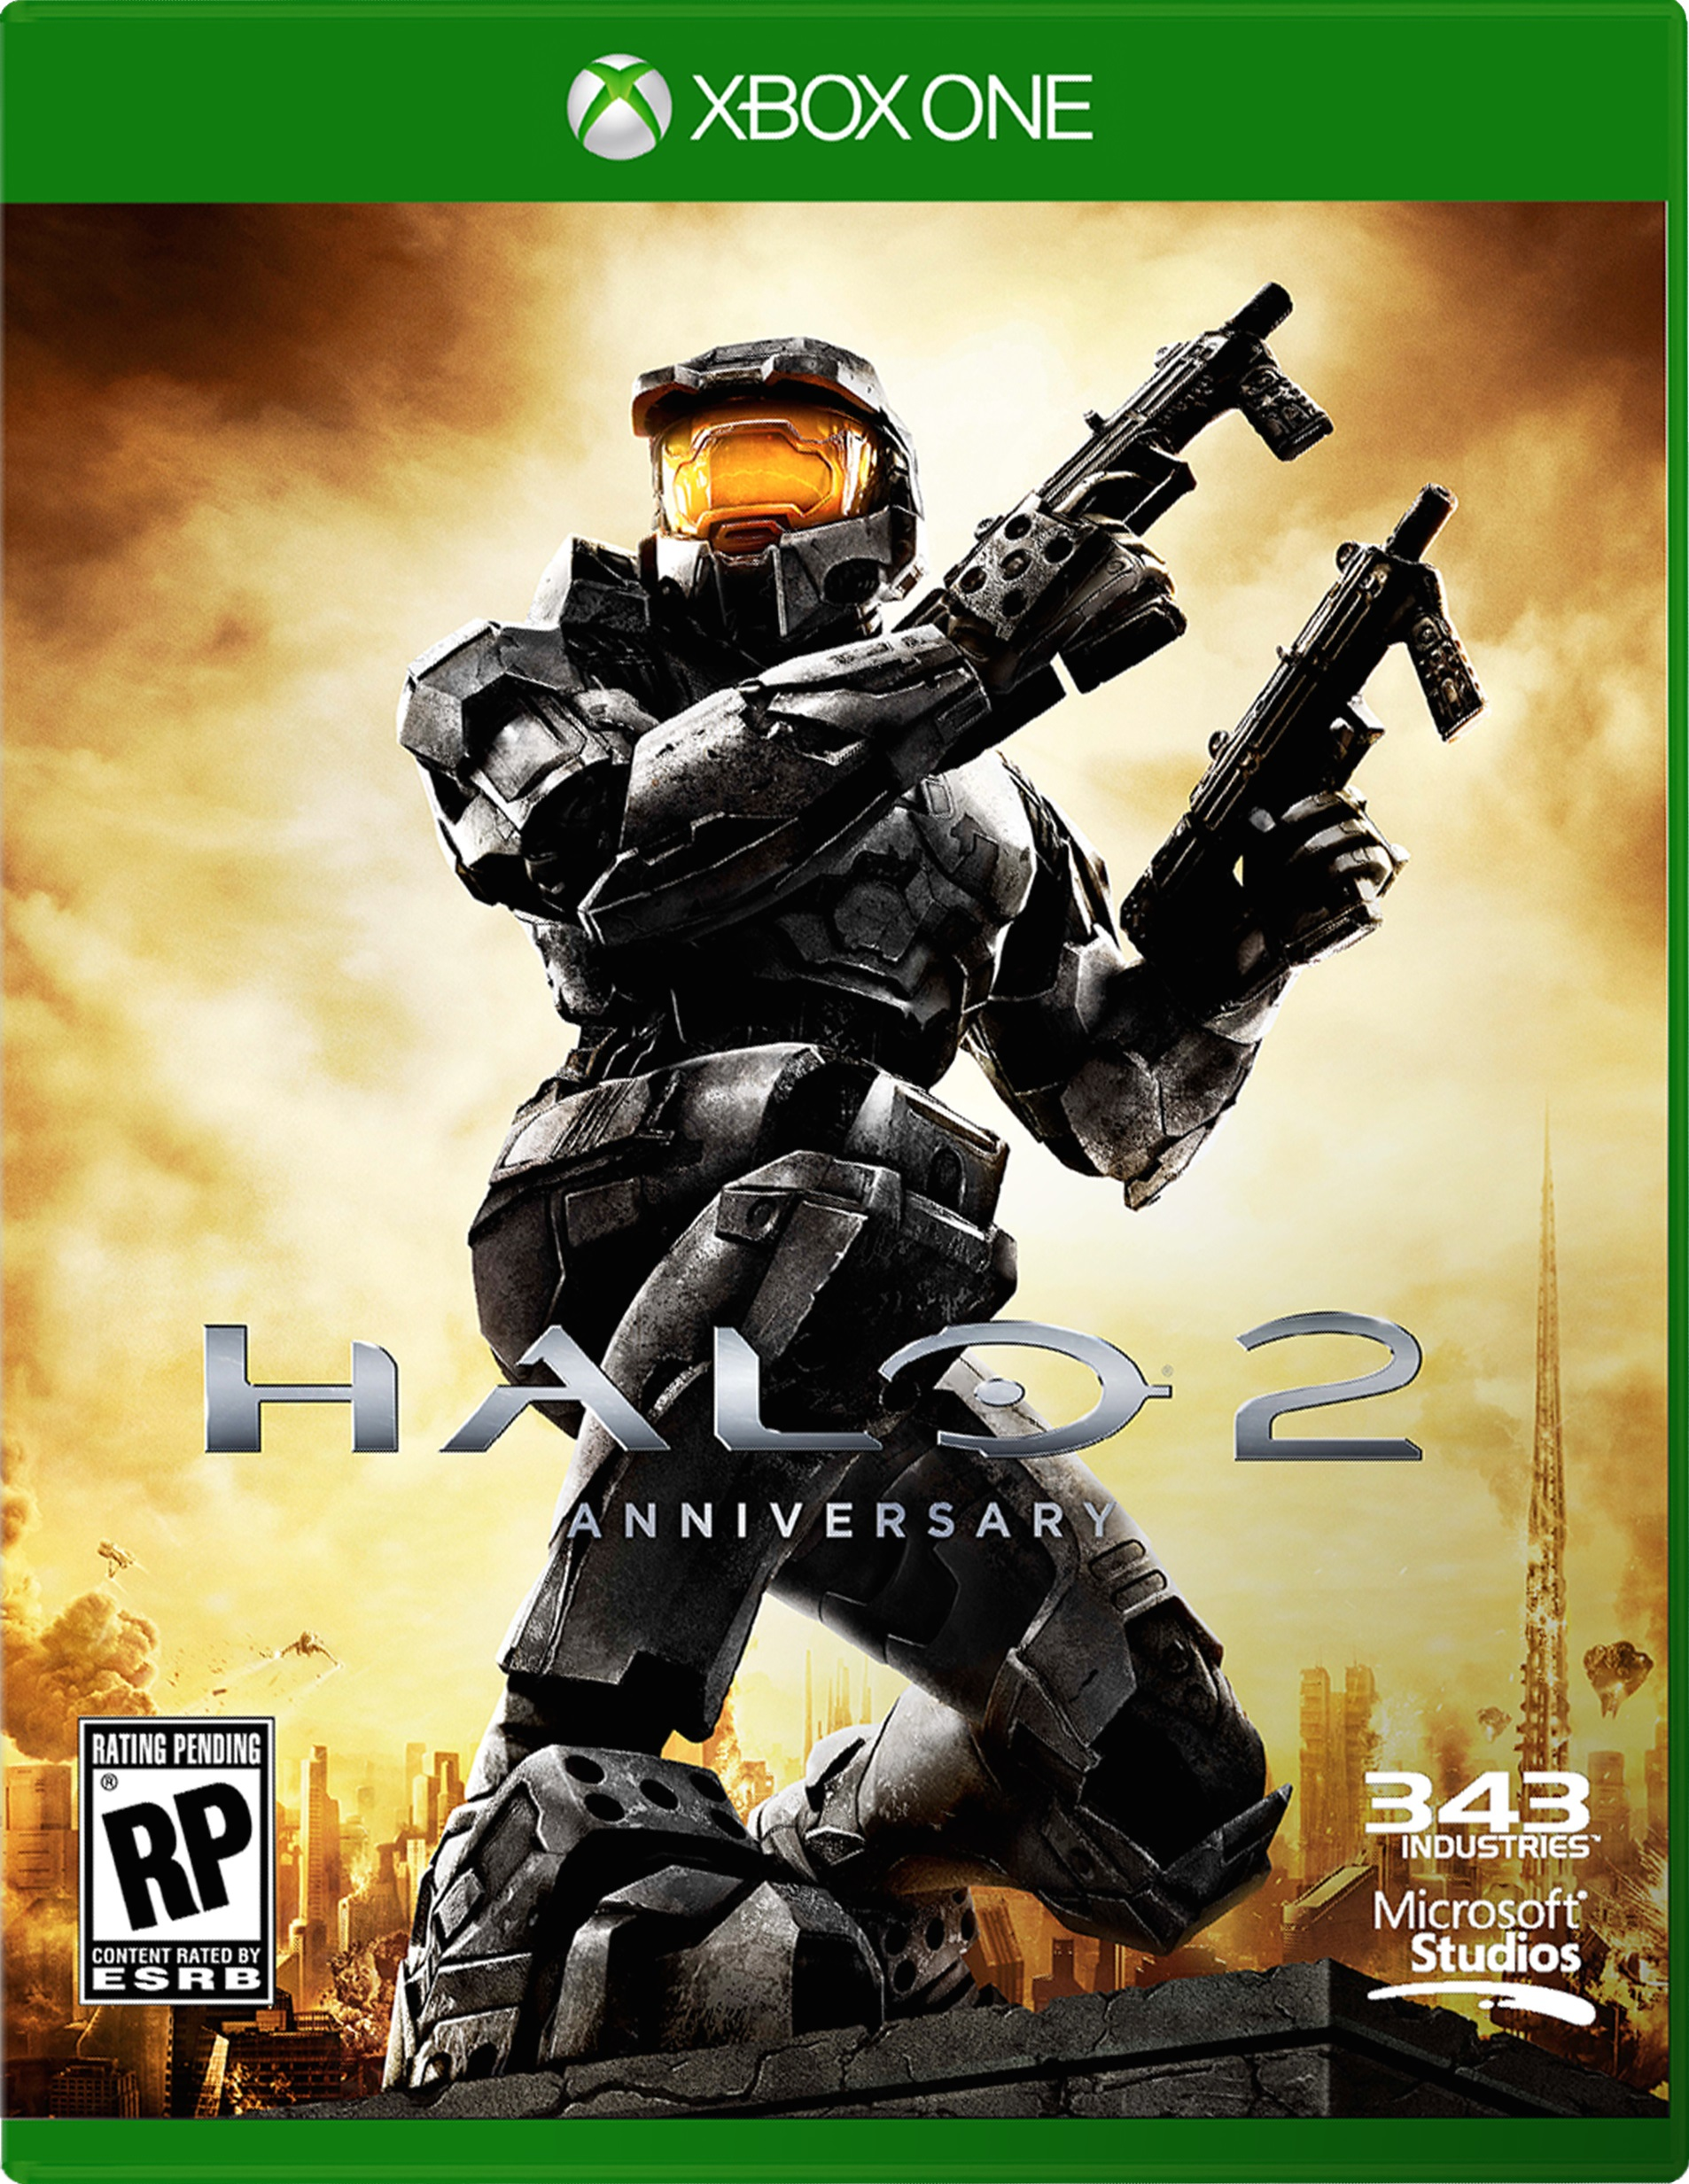 Halo 2 Anniversary  Halopedia the Halo encyclopedia